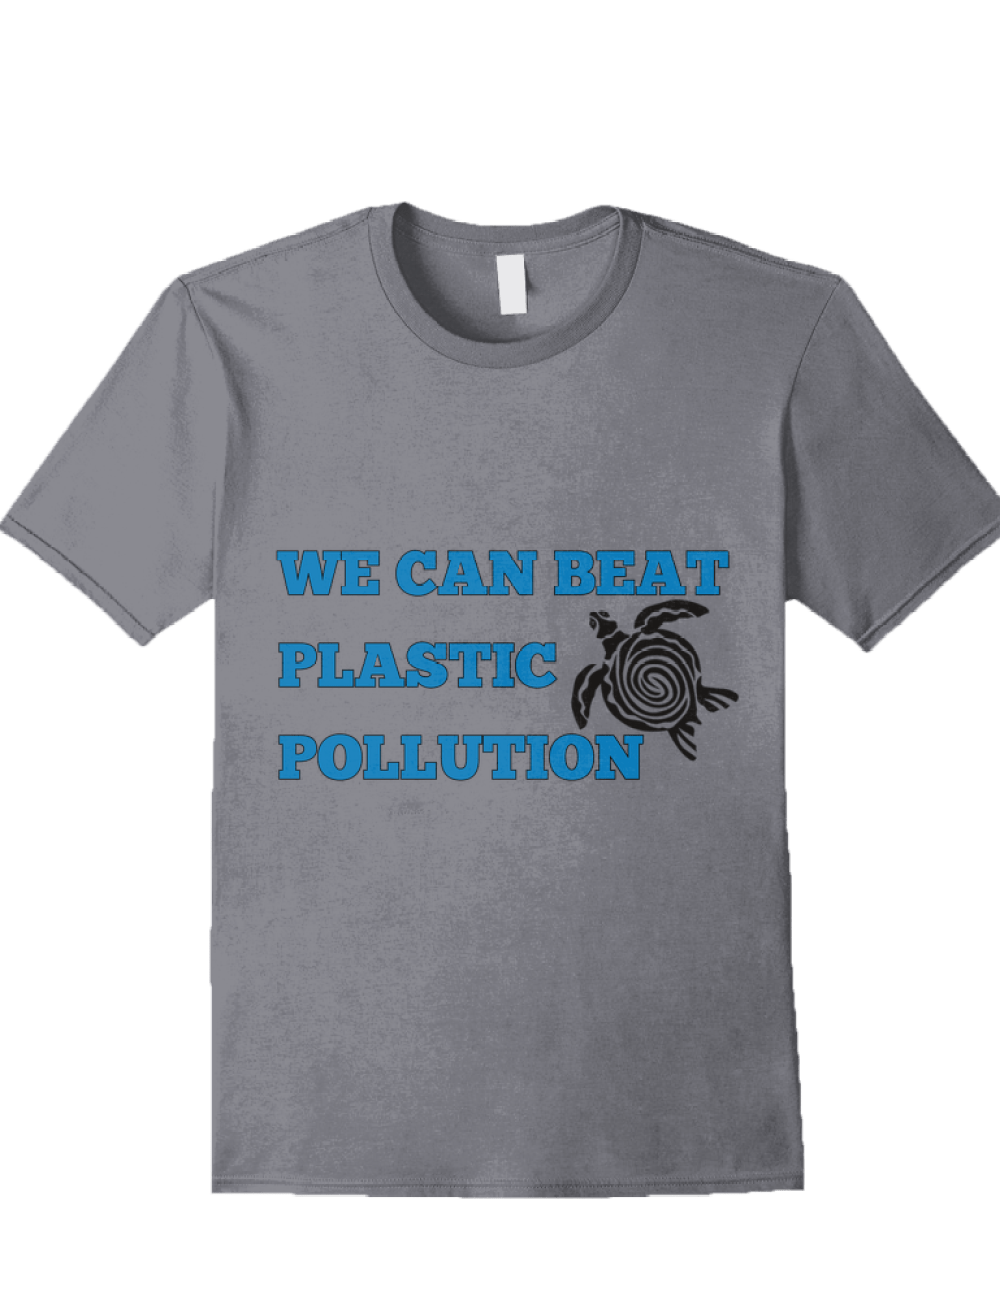 we can beat plastic pollution t-shirt with sea turtle design in grey